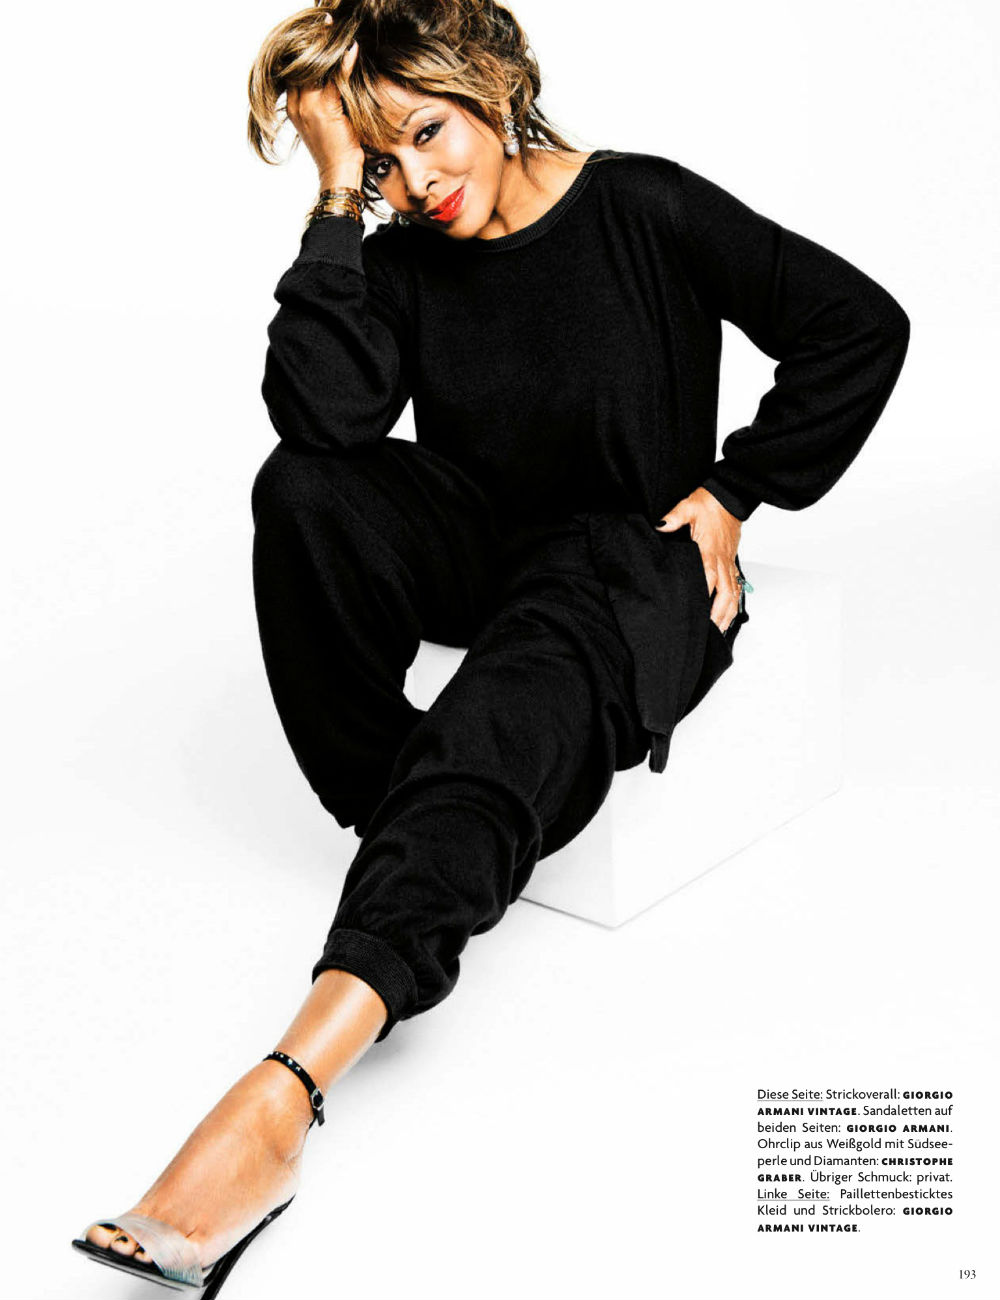 Tina Turner for Vogue Germany